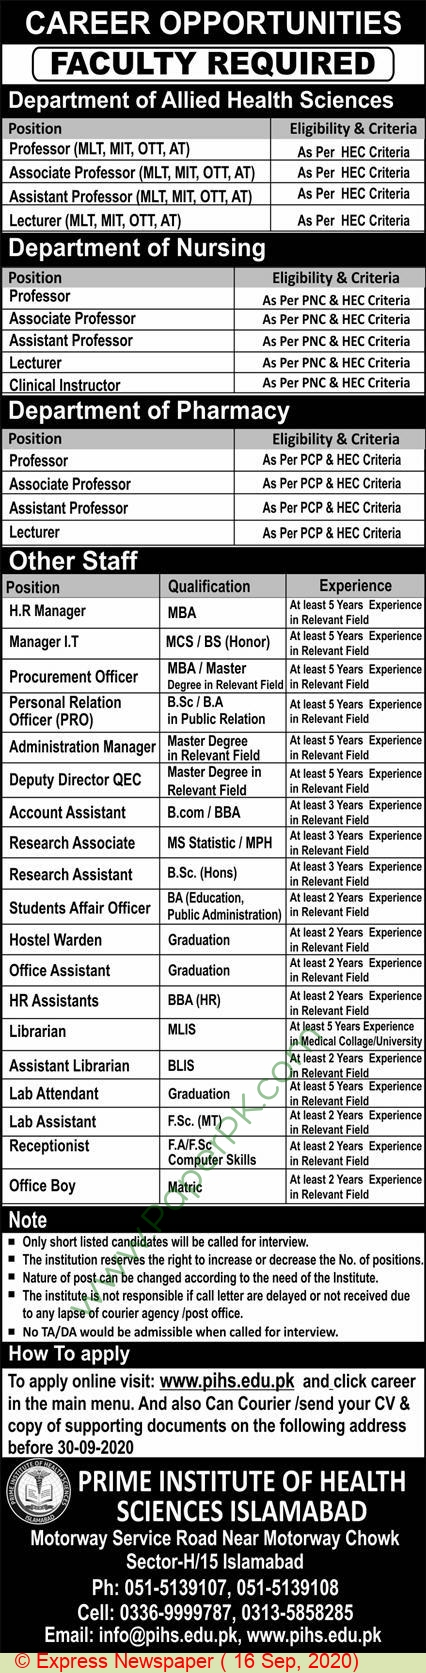 Prime Institute Of Health Sciences jobs newspaper ad for Librarian in Islamabad